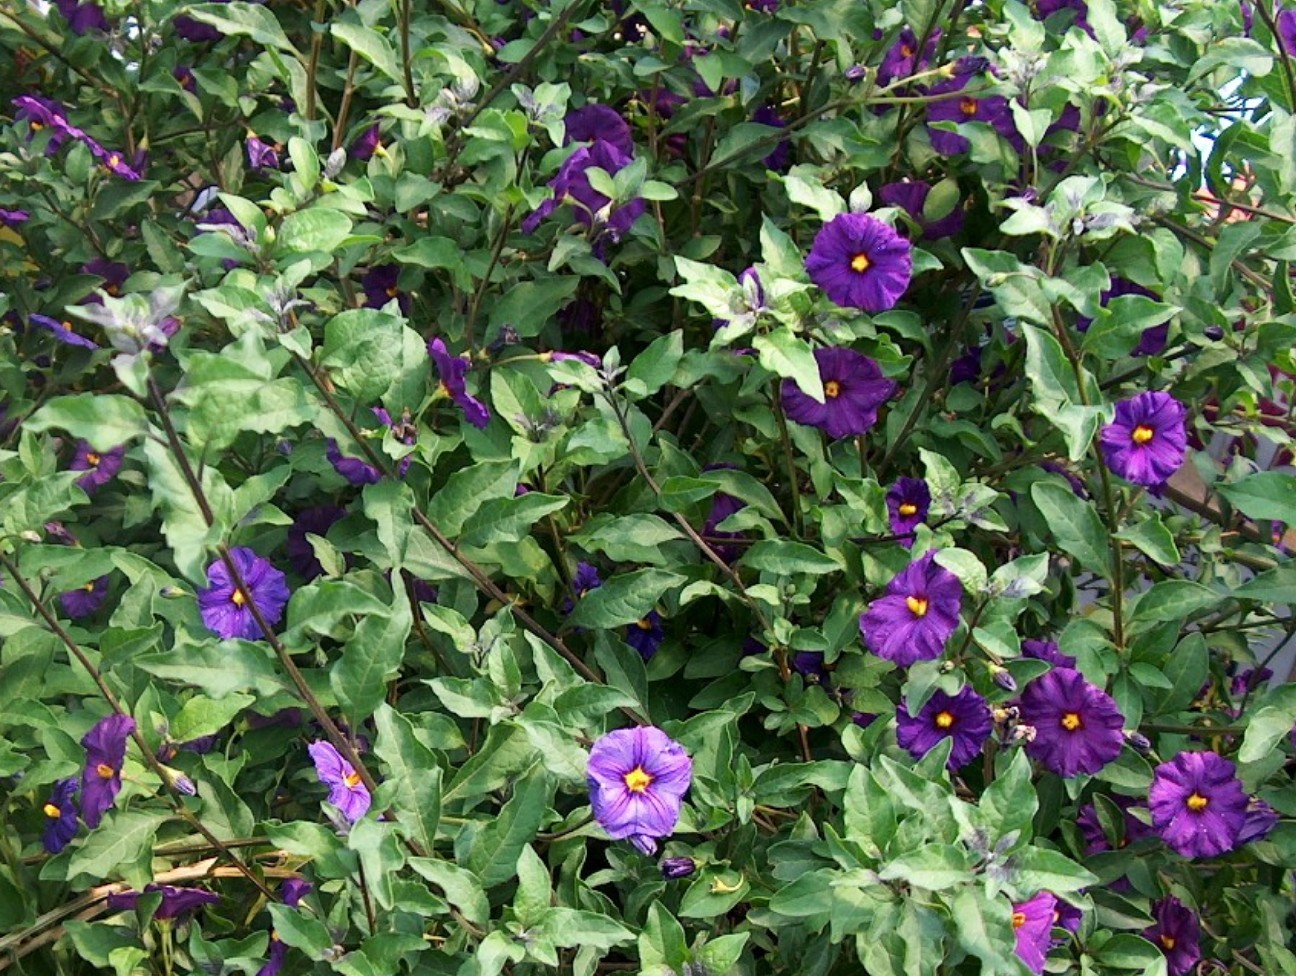 Purple Flowers Bush 8 Hd Wallpaper Hdflowerwallpaper Com